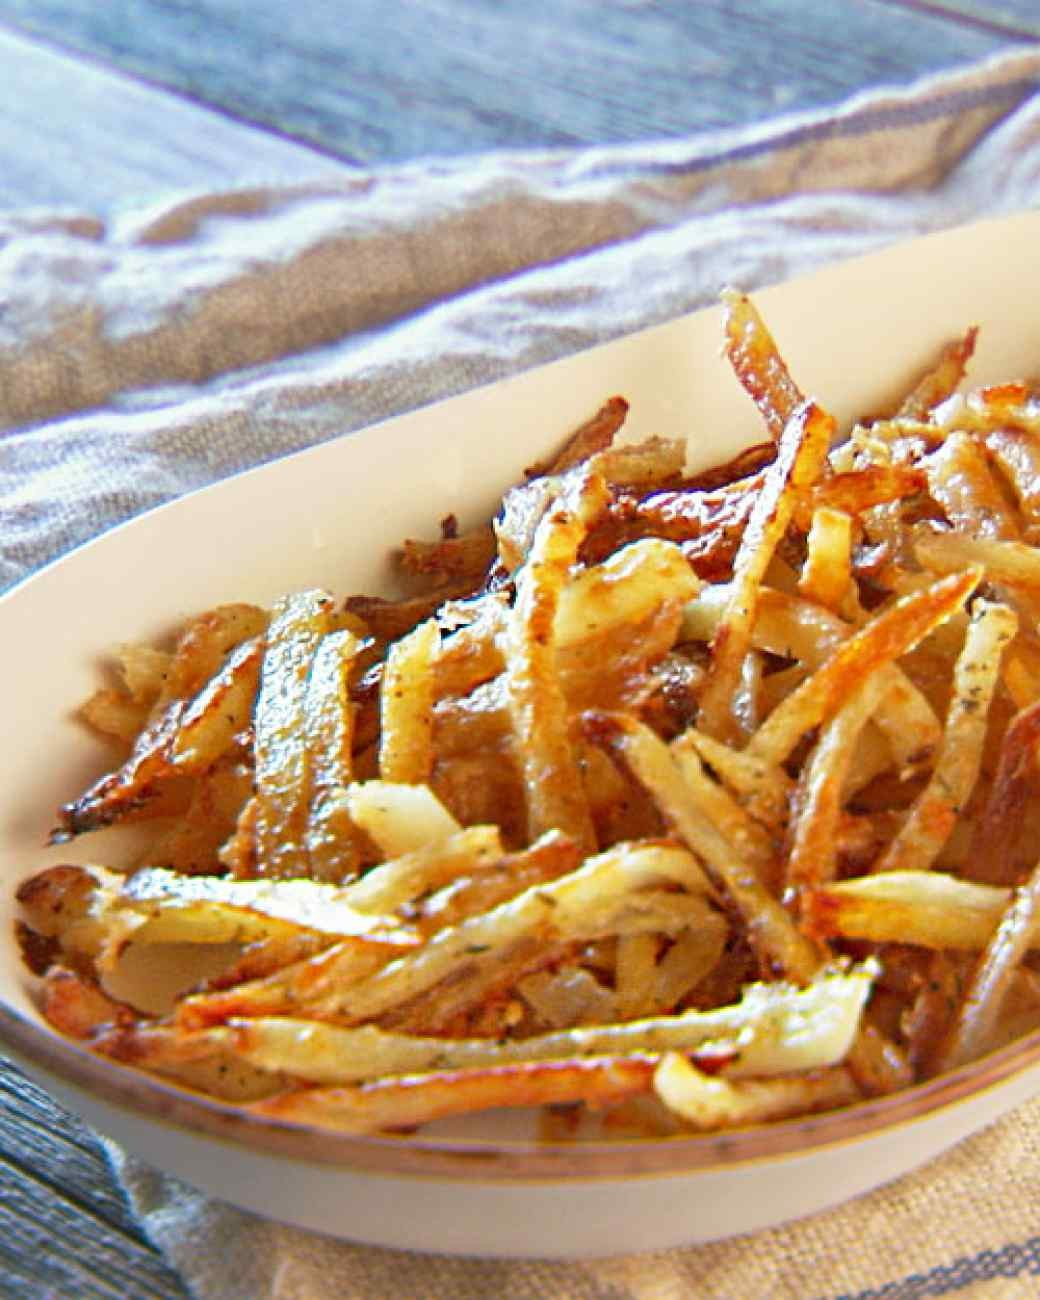 Italian fries recipe video saralyn copy me that forumfinder Image collections